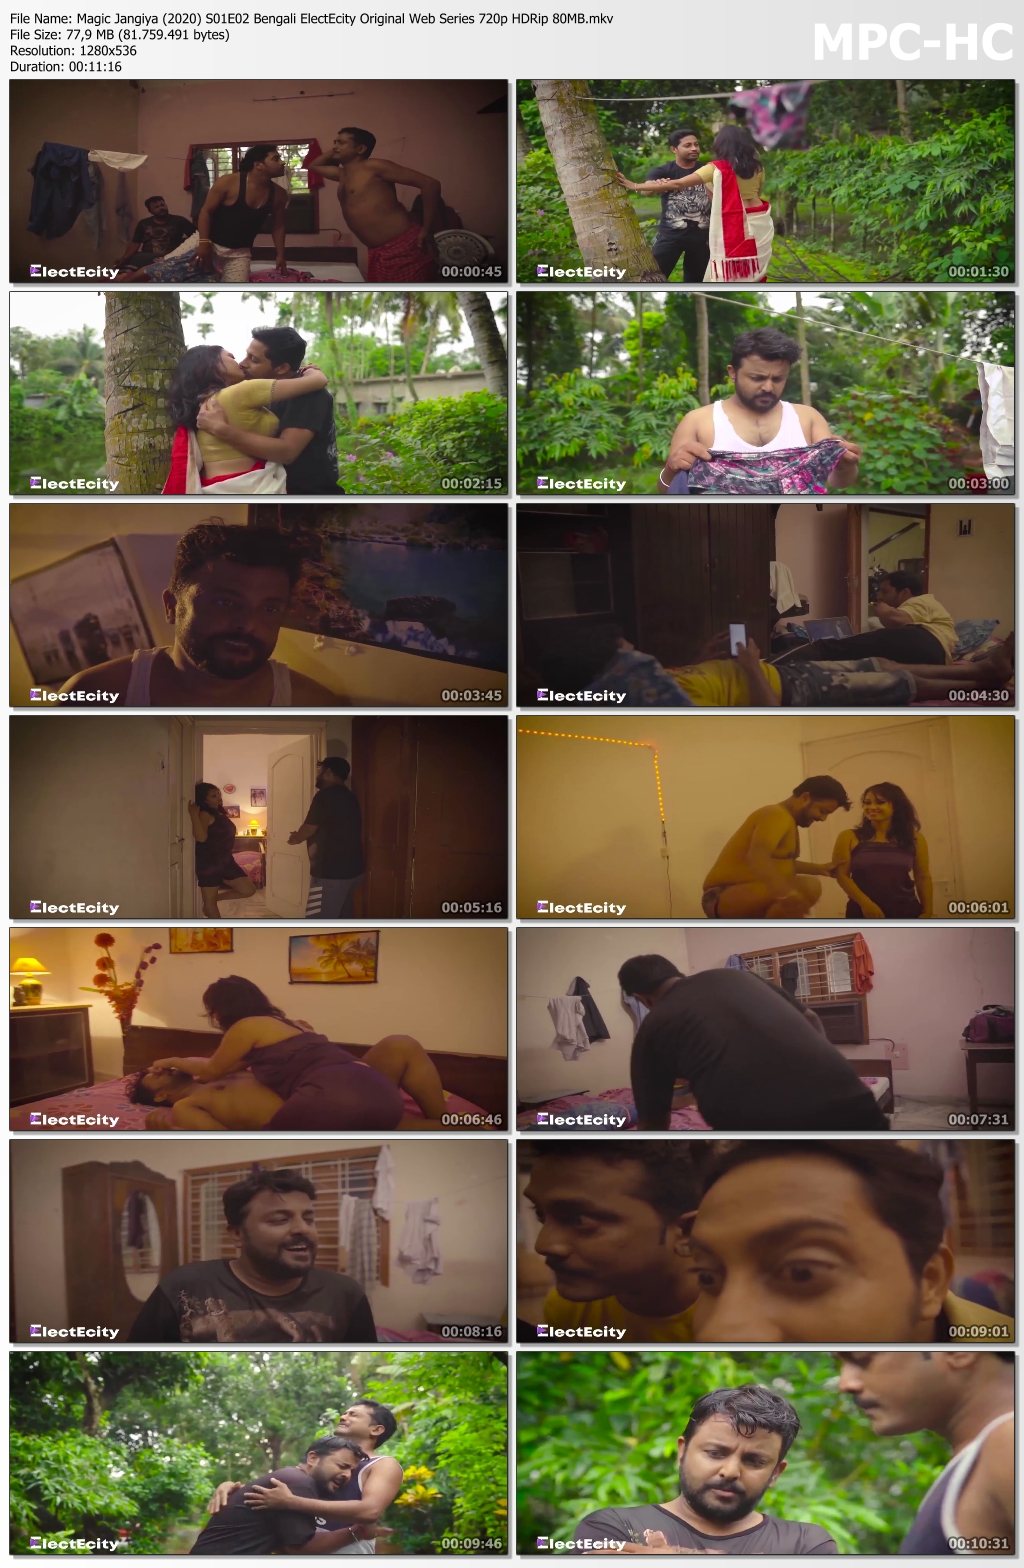 Magic-Jangiya-2020-S01-E02-Bengali-Elect-Ecity-Original-Web-Series-720p-HDRip-80-MB-mkv-thumbs